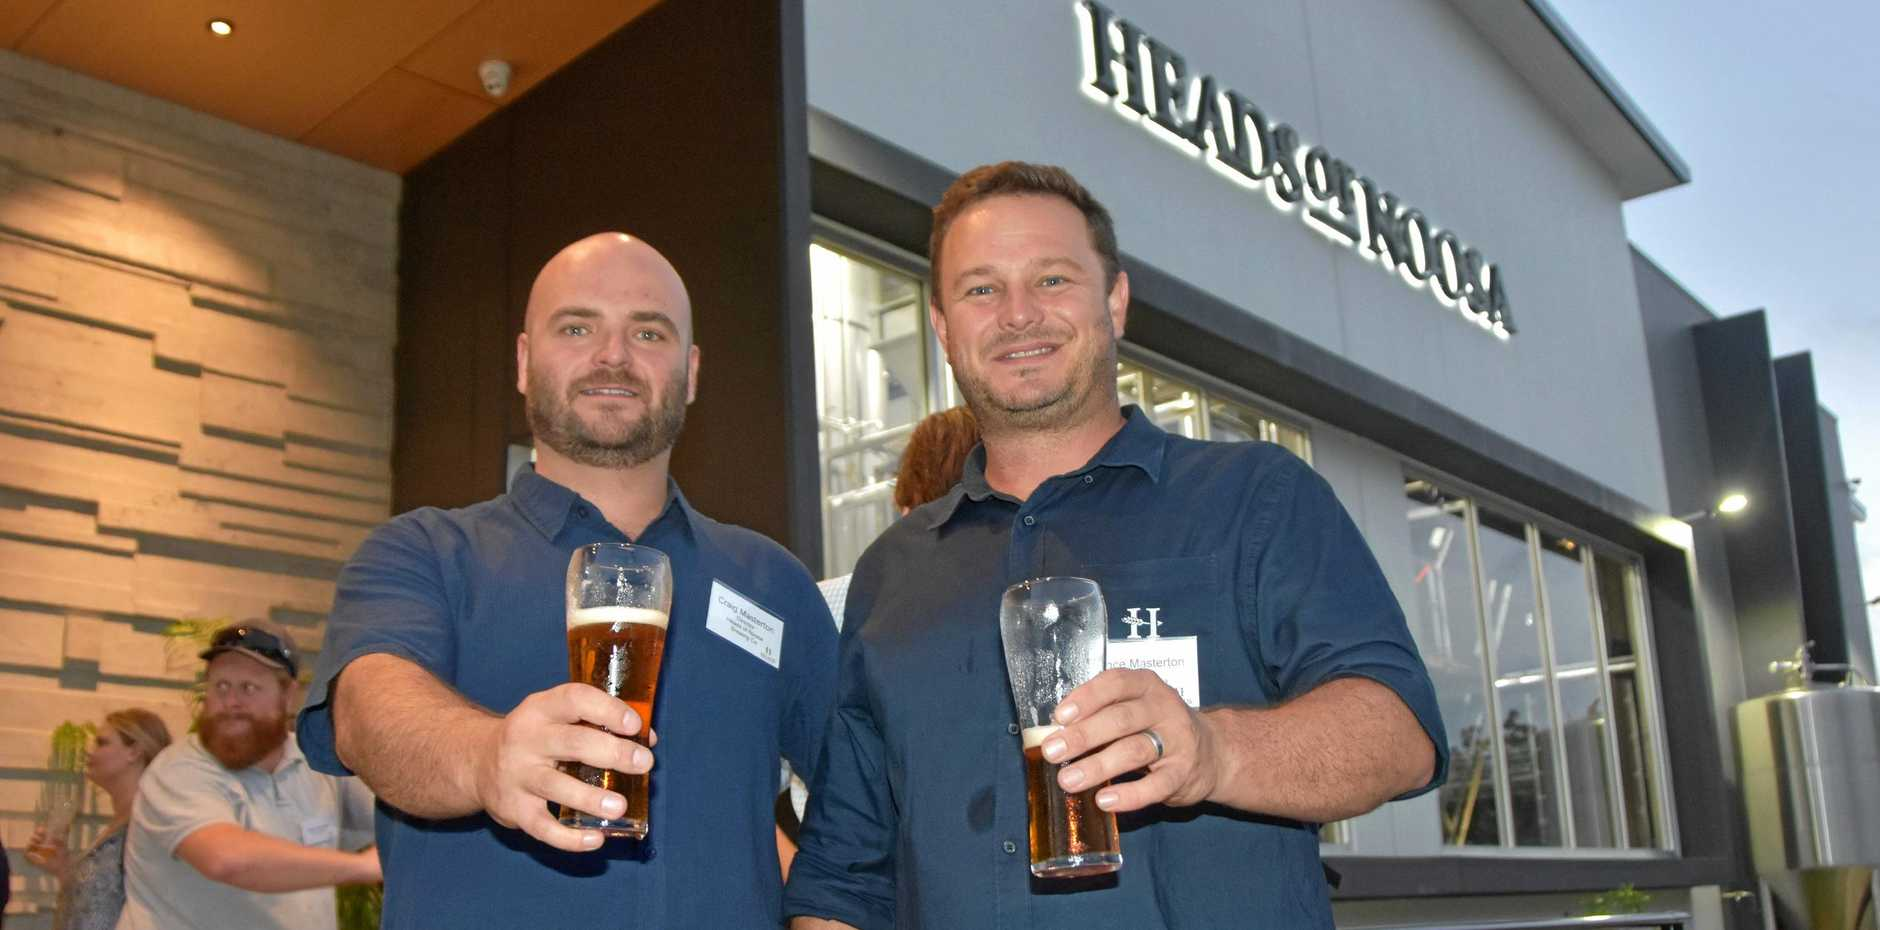 CHEERS: Heads of Noosa Brewing Company's Craig and Lance Masterton at the opening night of their brewery.